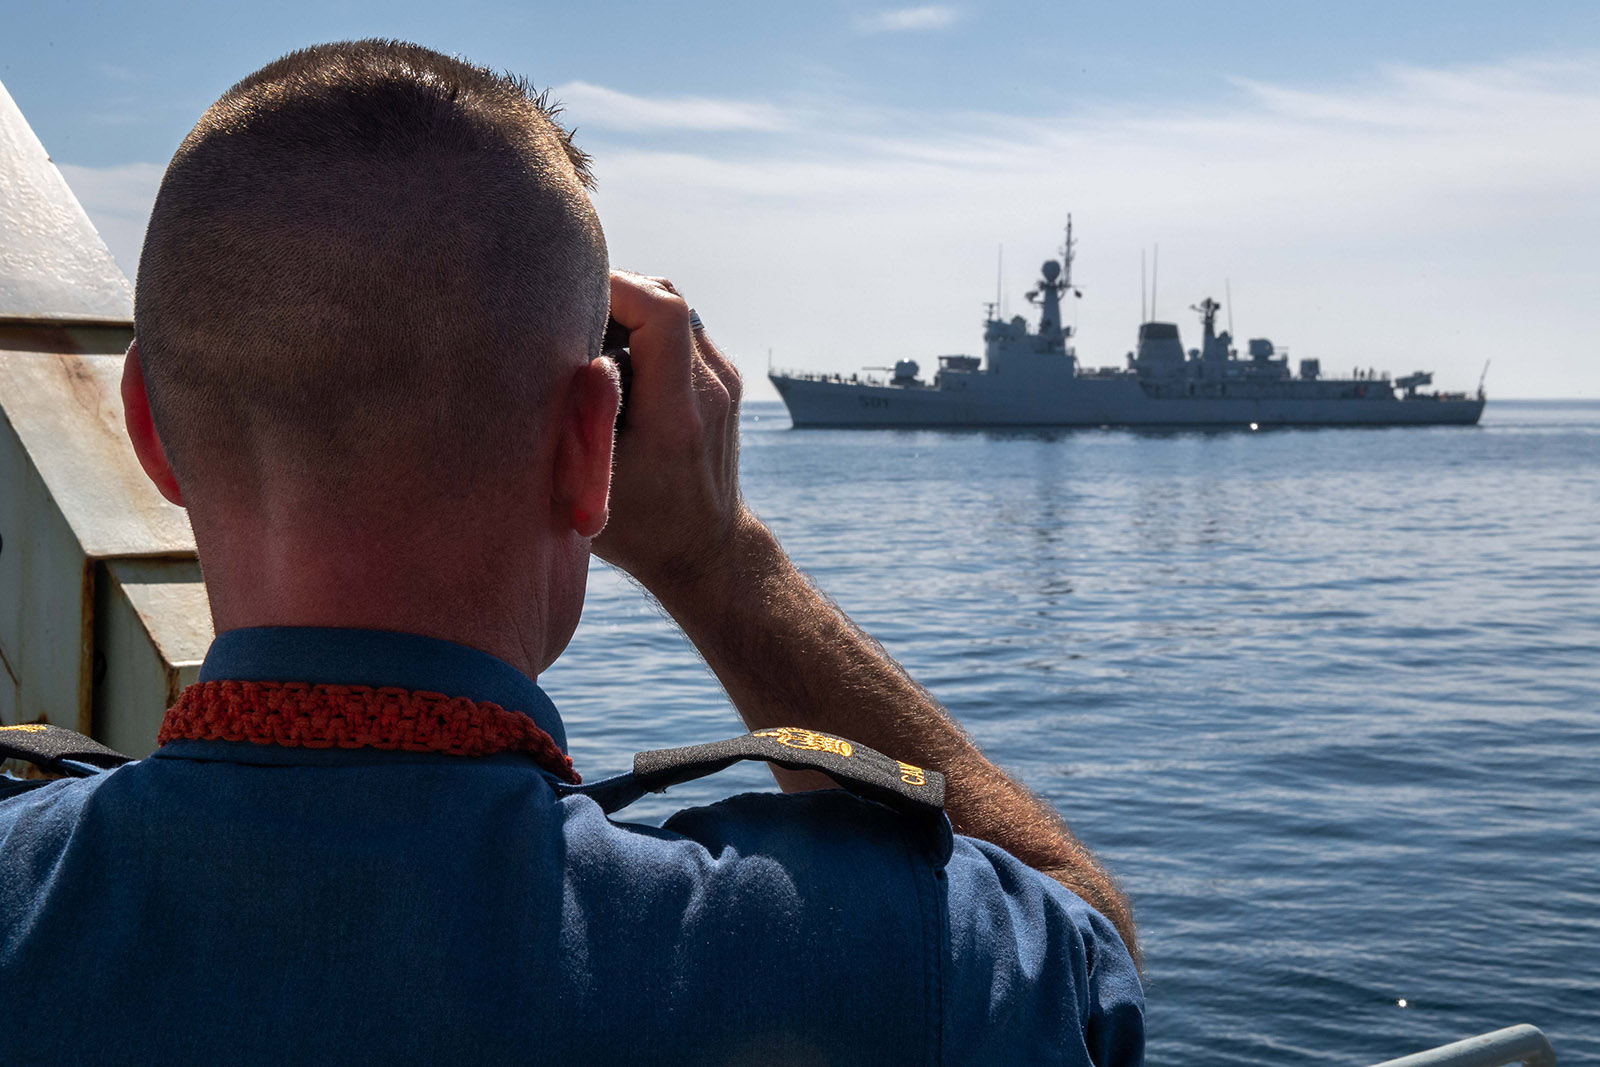 Petty Officer First Class Chris Oldham, coxswain of HMCS Kingston, watches Royal Moroccan Navy ship Lieutenant-Colonel Errhamani during PHOENIX EXPRESS 19 in the Western Mediterranean Sea on April 3, 2019.